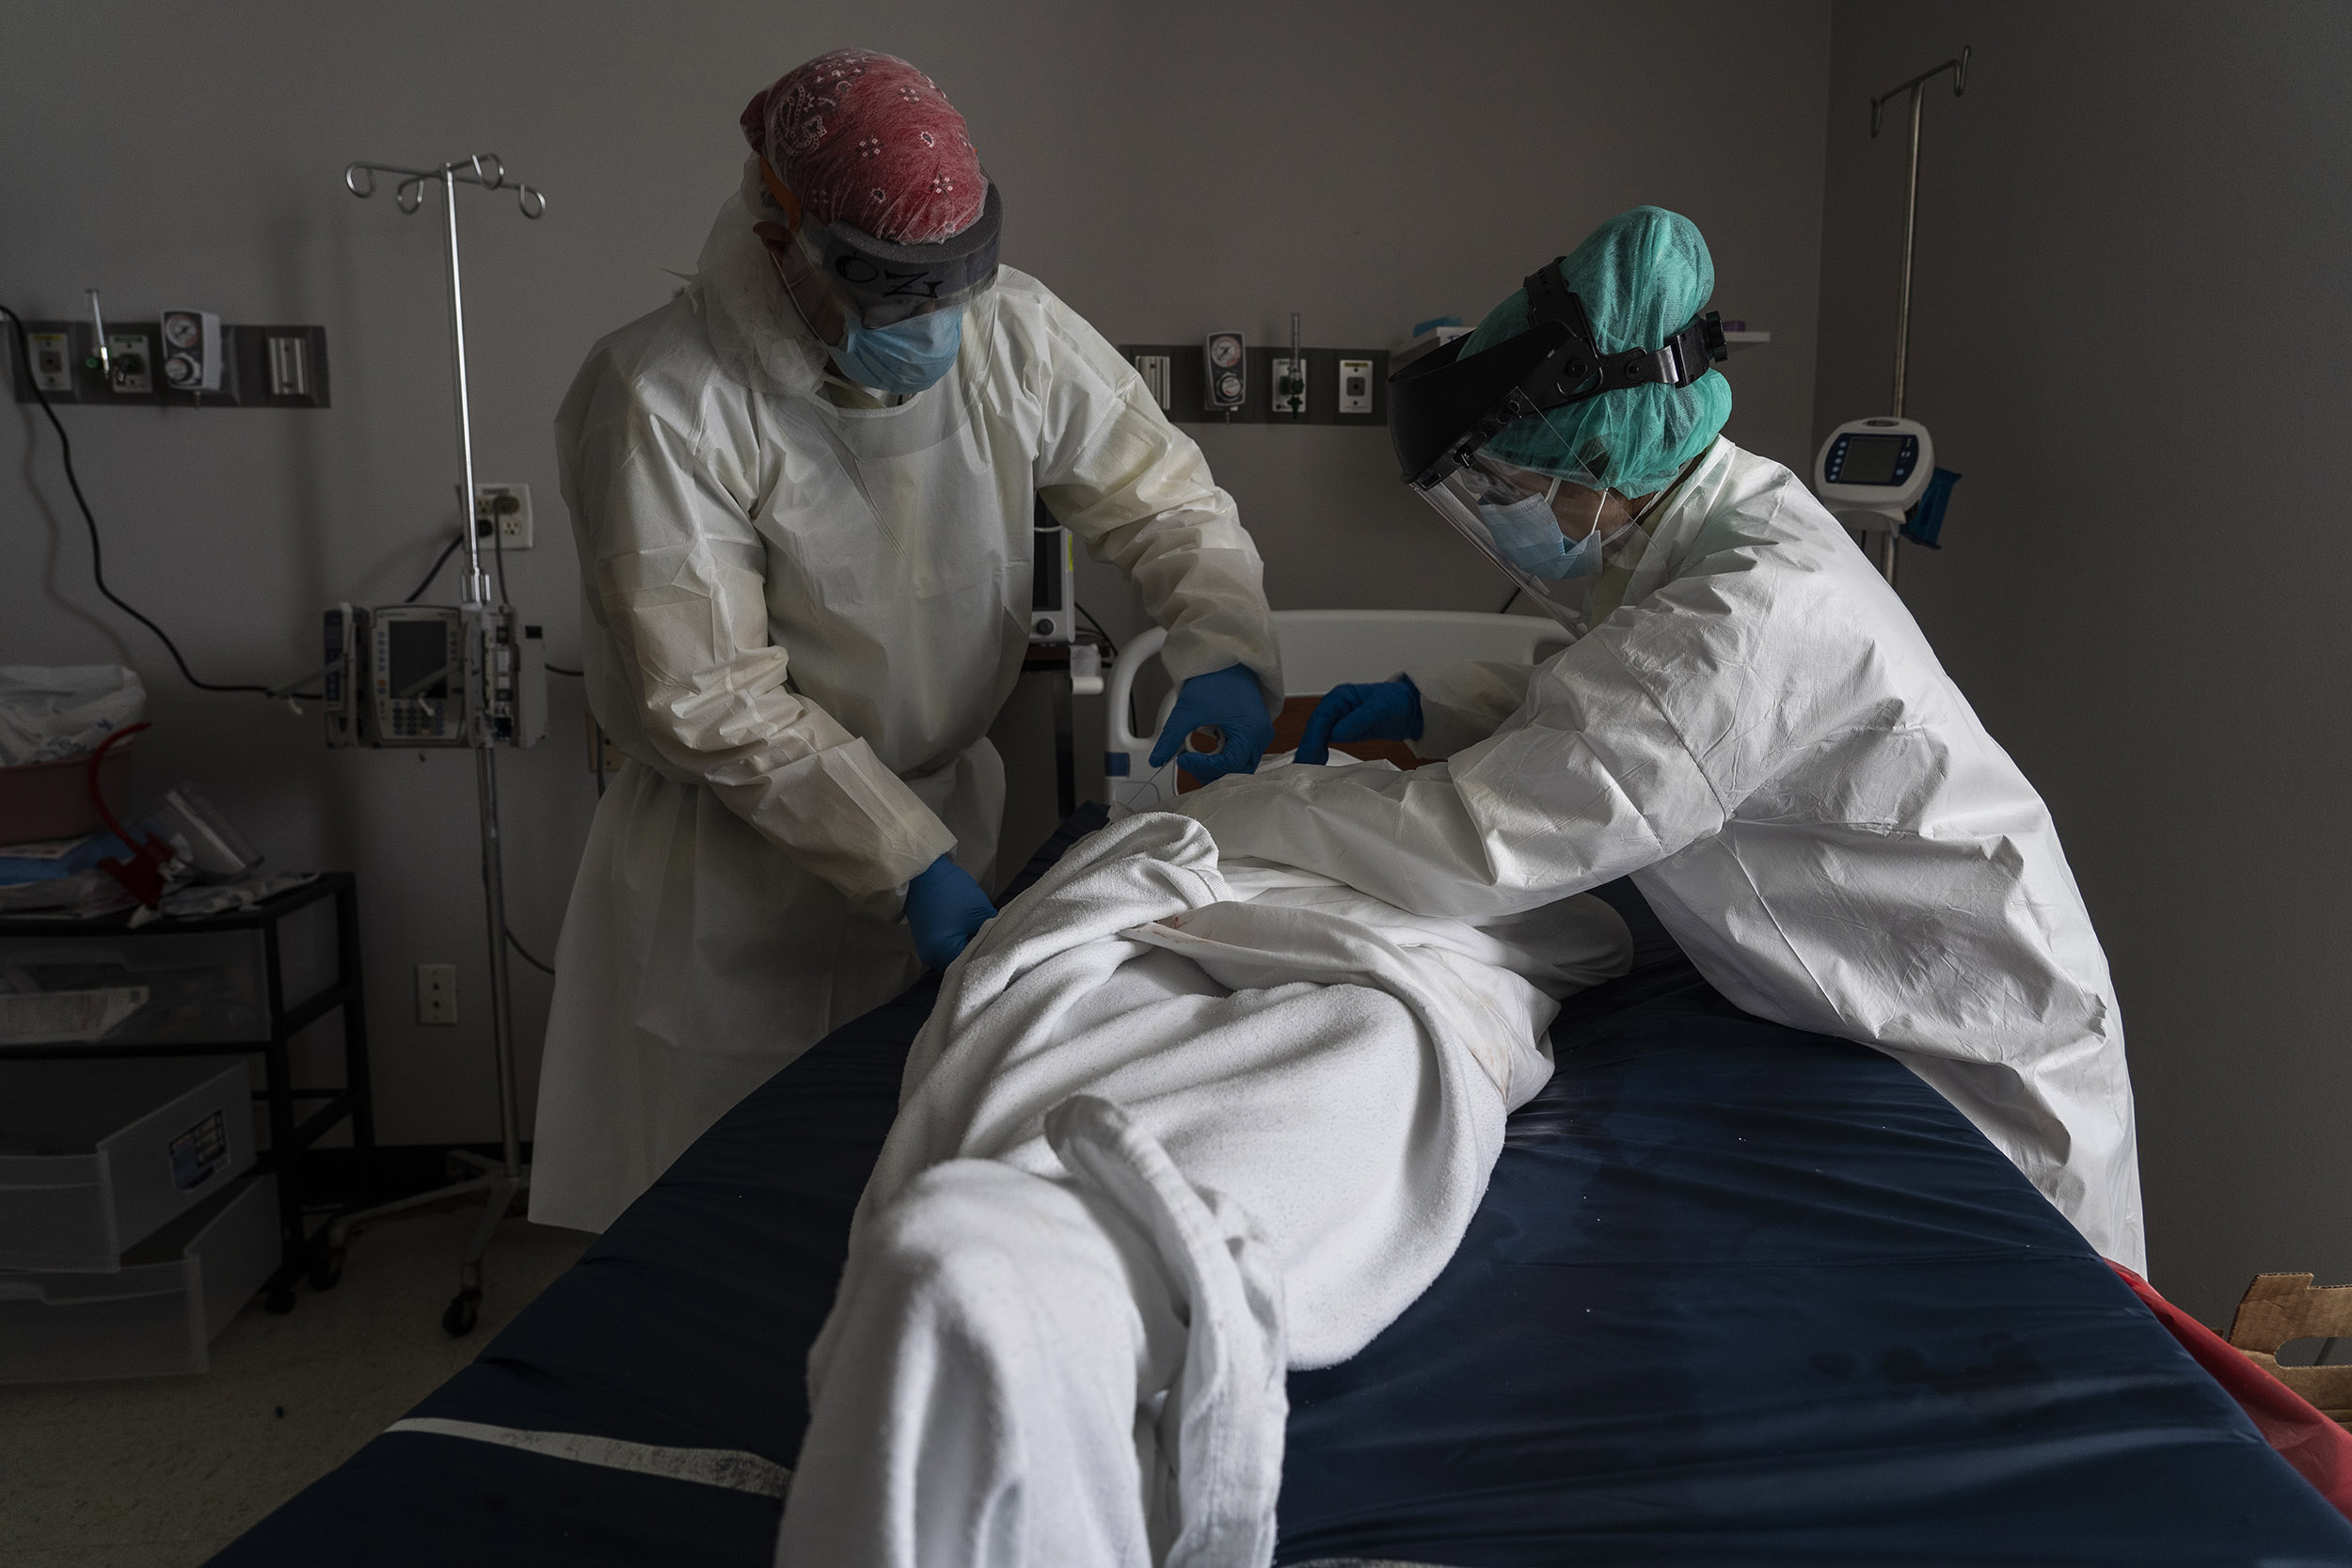 Medical staff wraps a deceased patient who died of Covid-19 in blankets at the United Memorial Medical Center on June 30, in Houston, Texas.